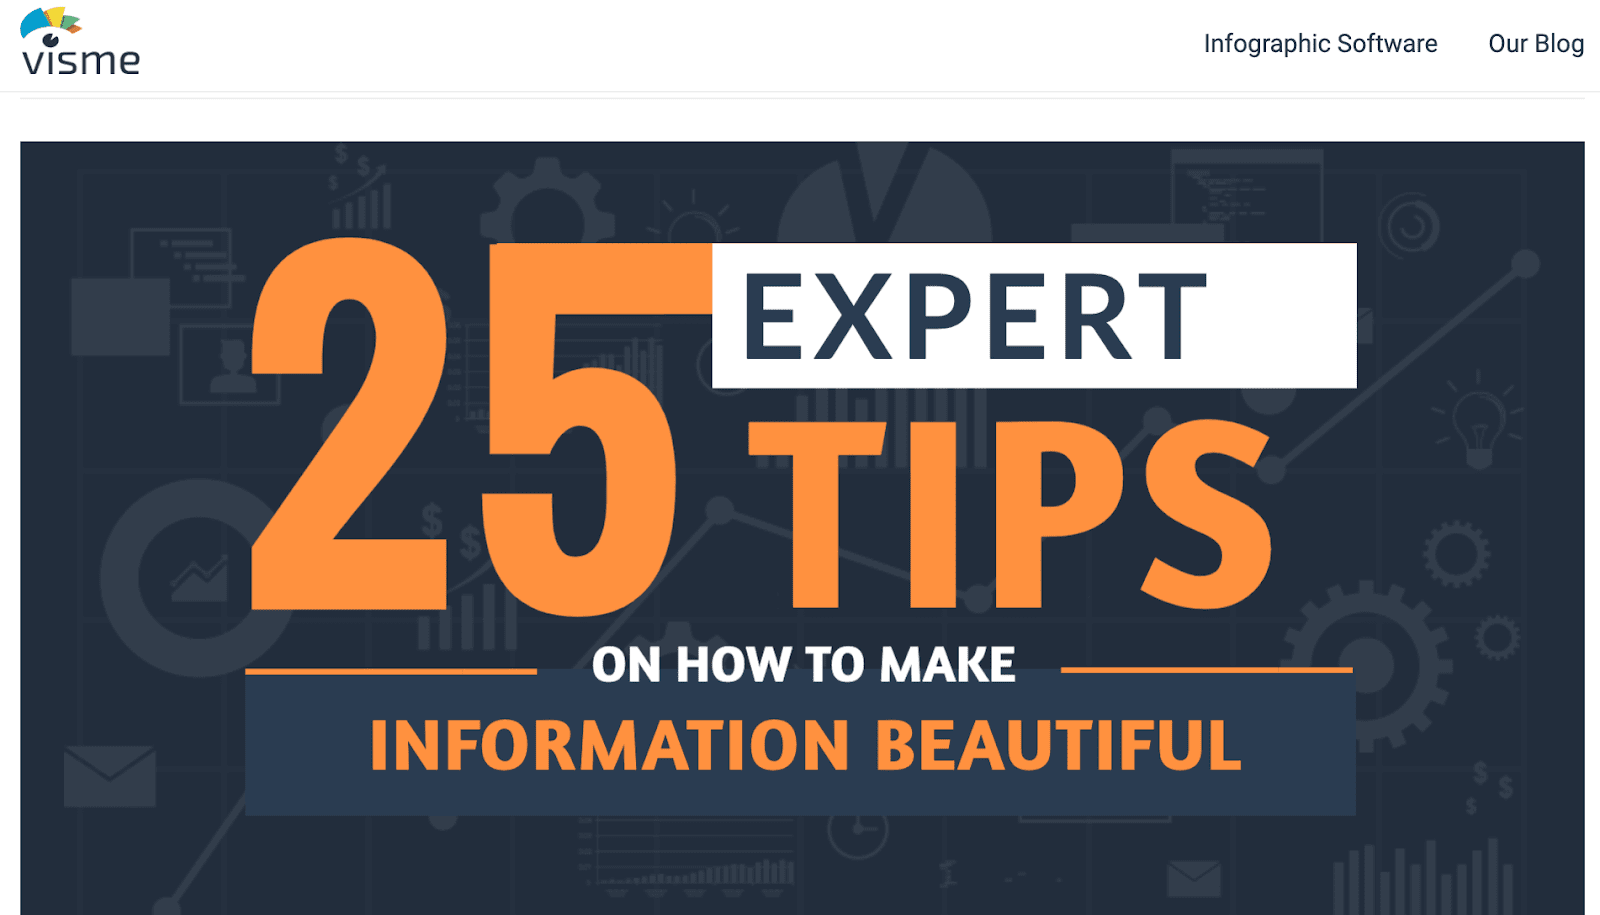 Visme 25 Expert Tips on How to Make Information Beautiful